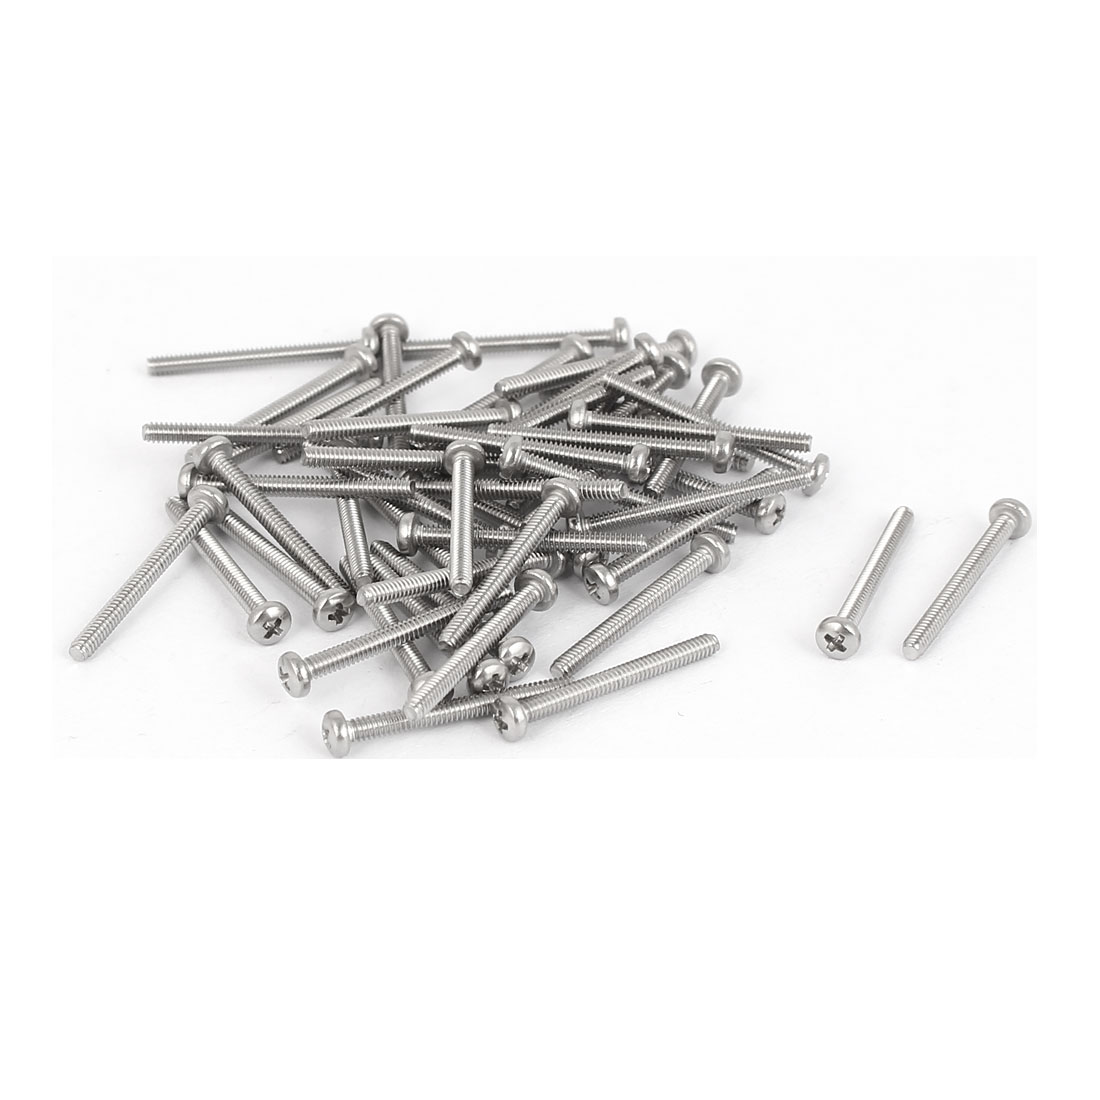 50 Pcs M1.6x16mm 316 Stainless Steel Phillips Pan Head Machine Screws Bolts